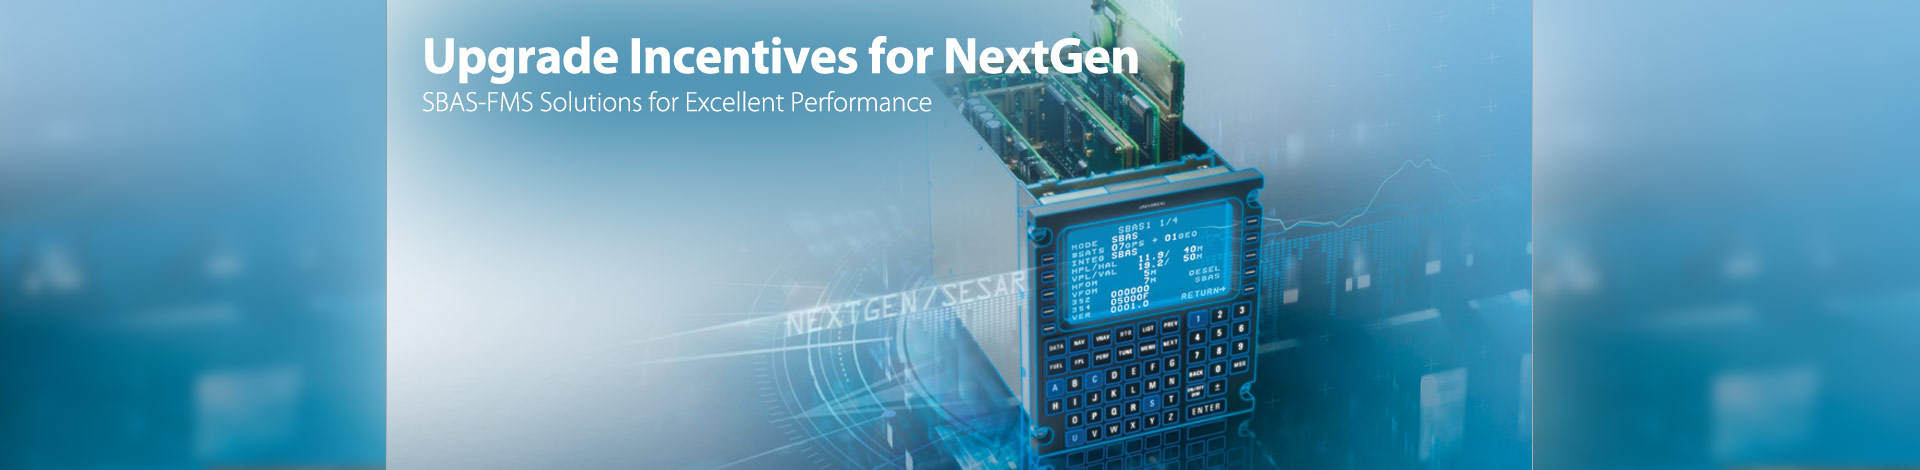 NextGen FMS Upgrade Incentive